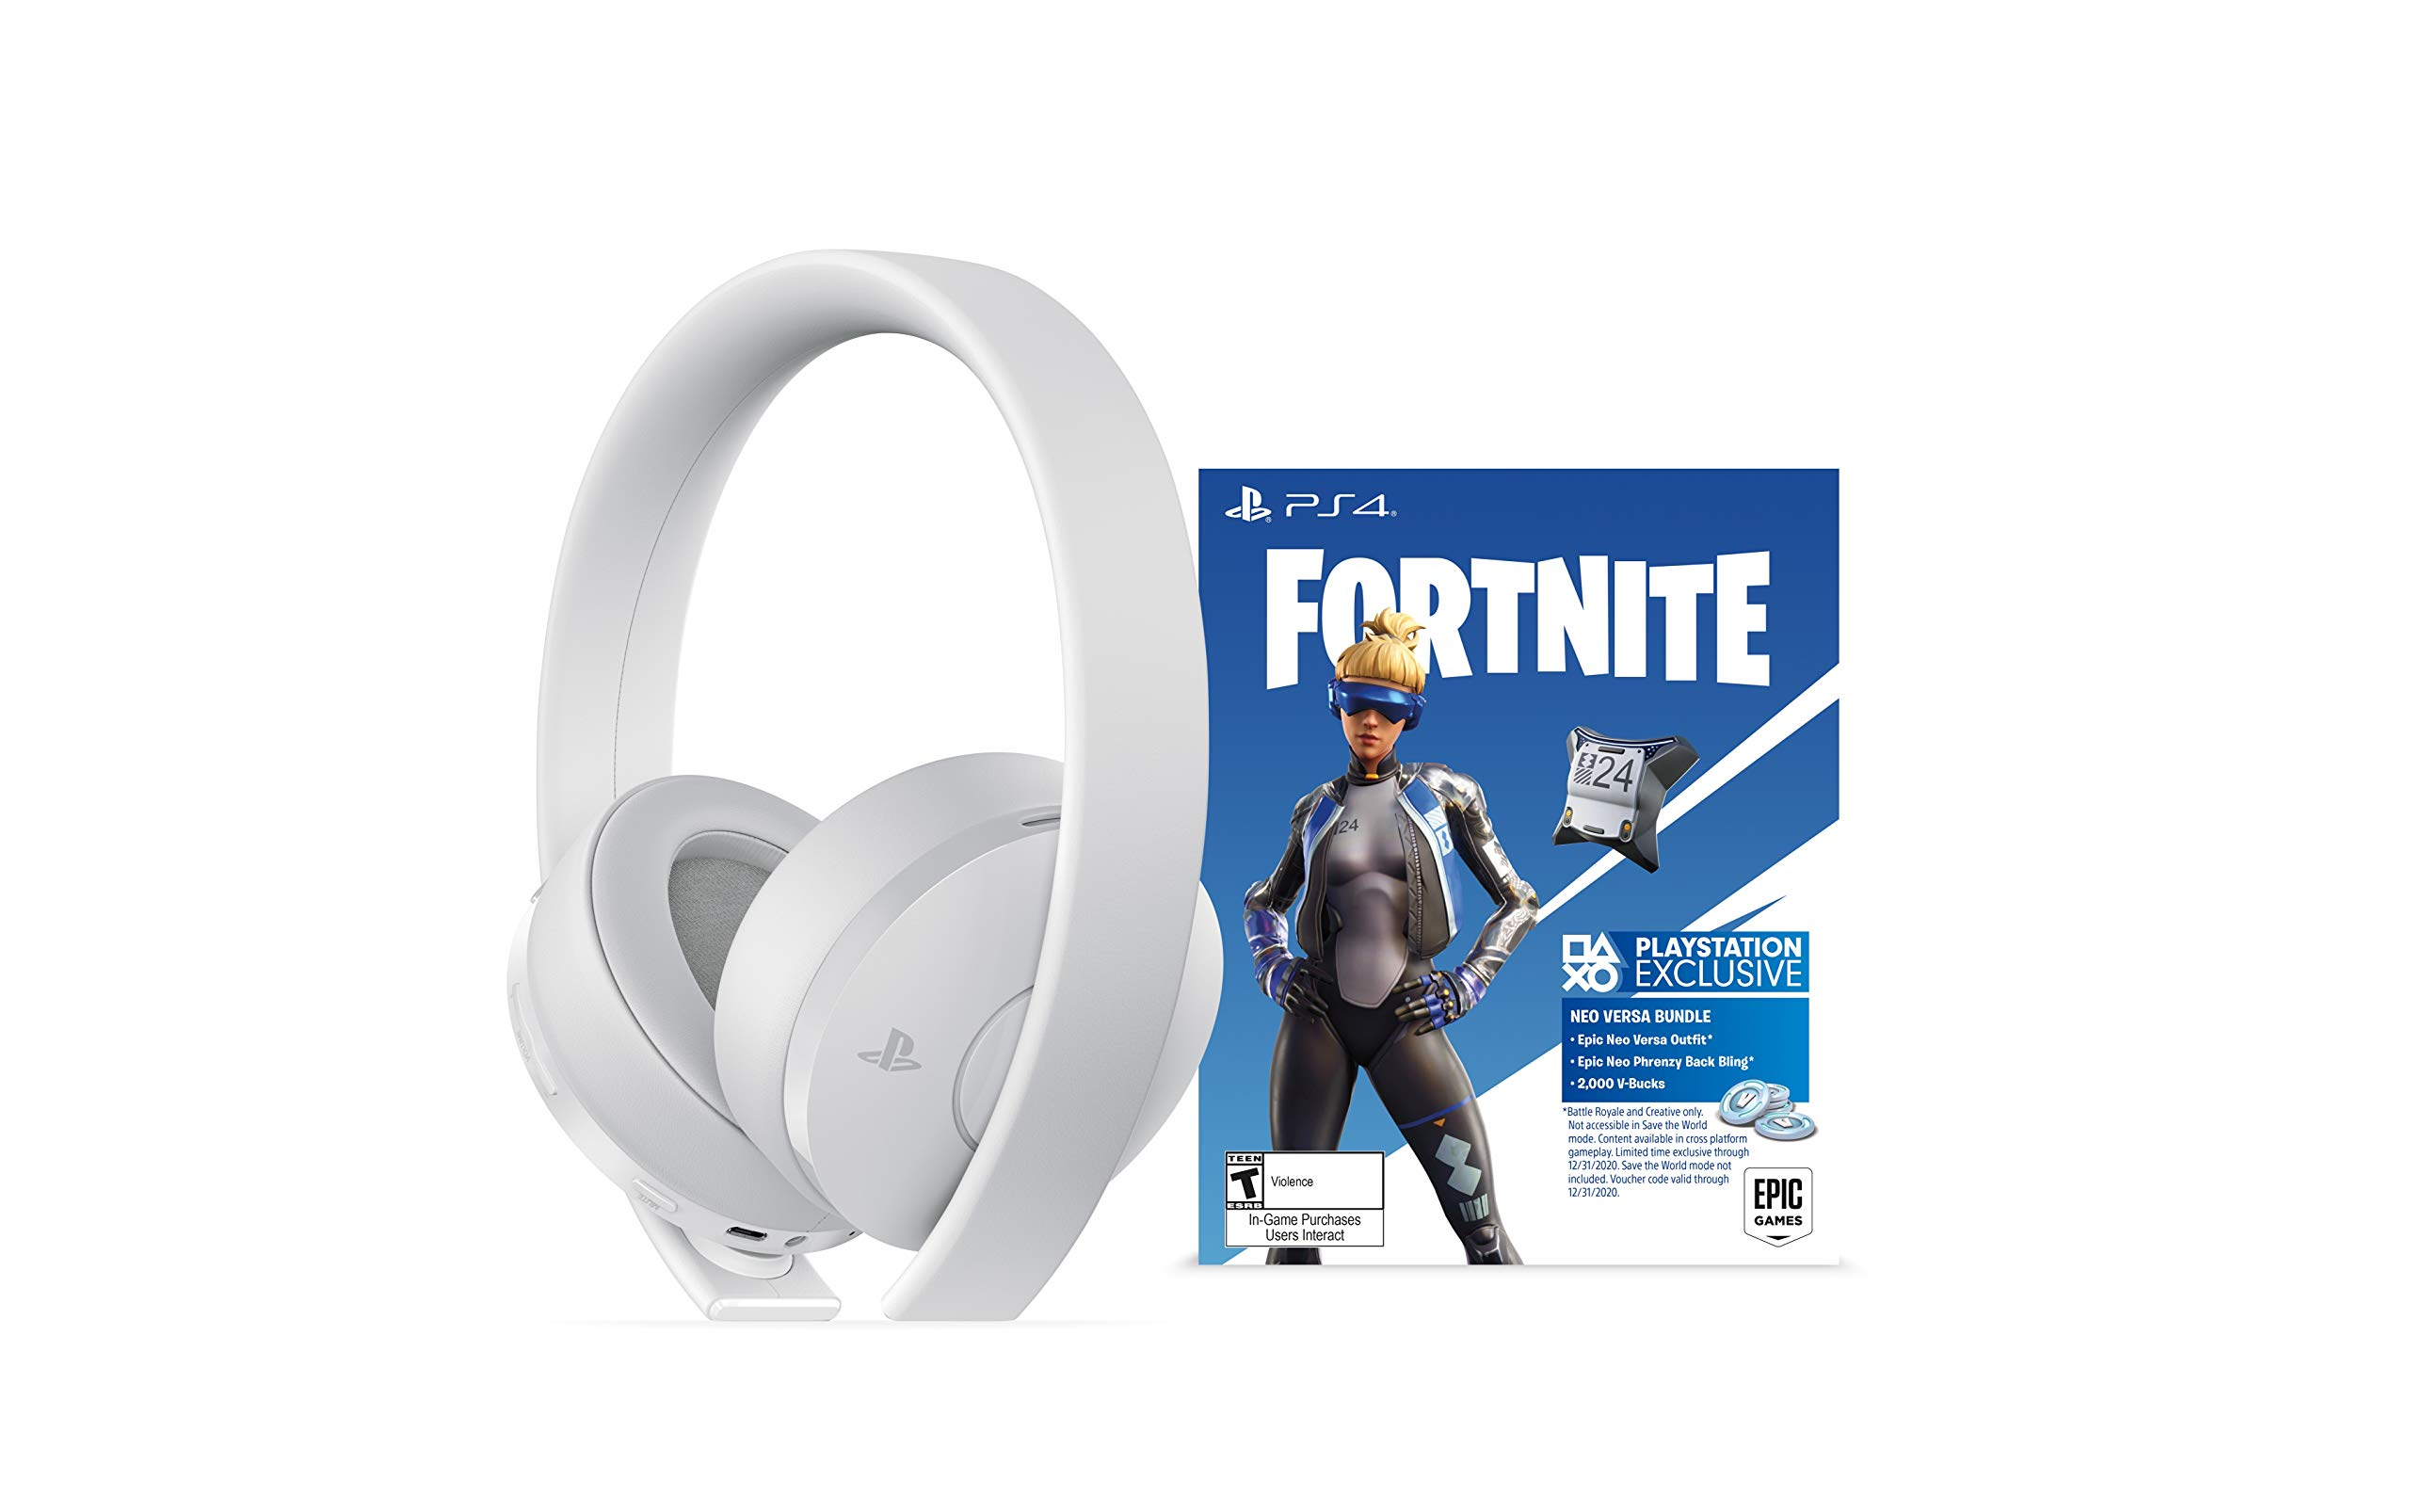 PlayStation Gold Wireless Headset Fortnite White - PlayStation 4 by Sony